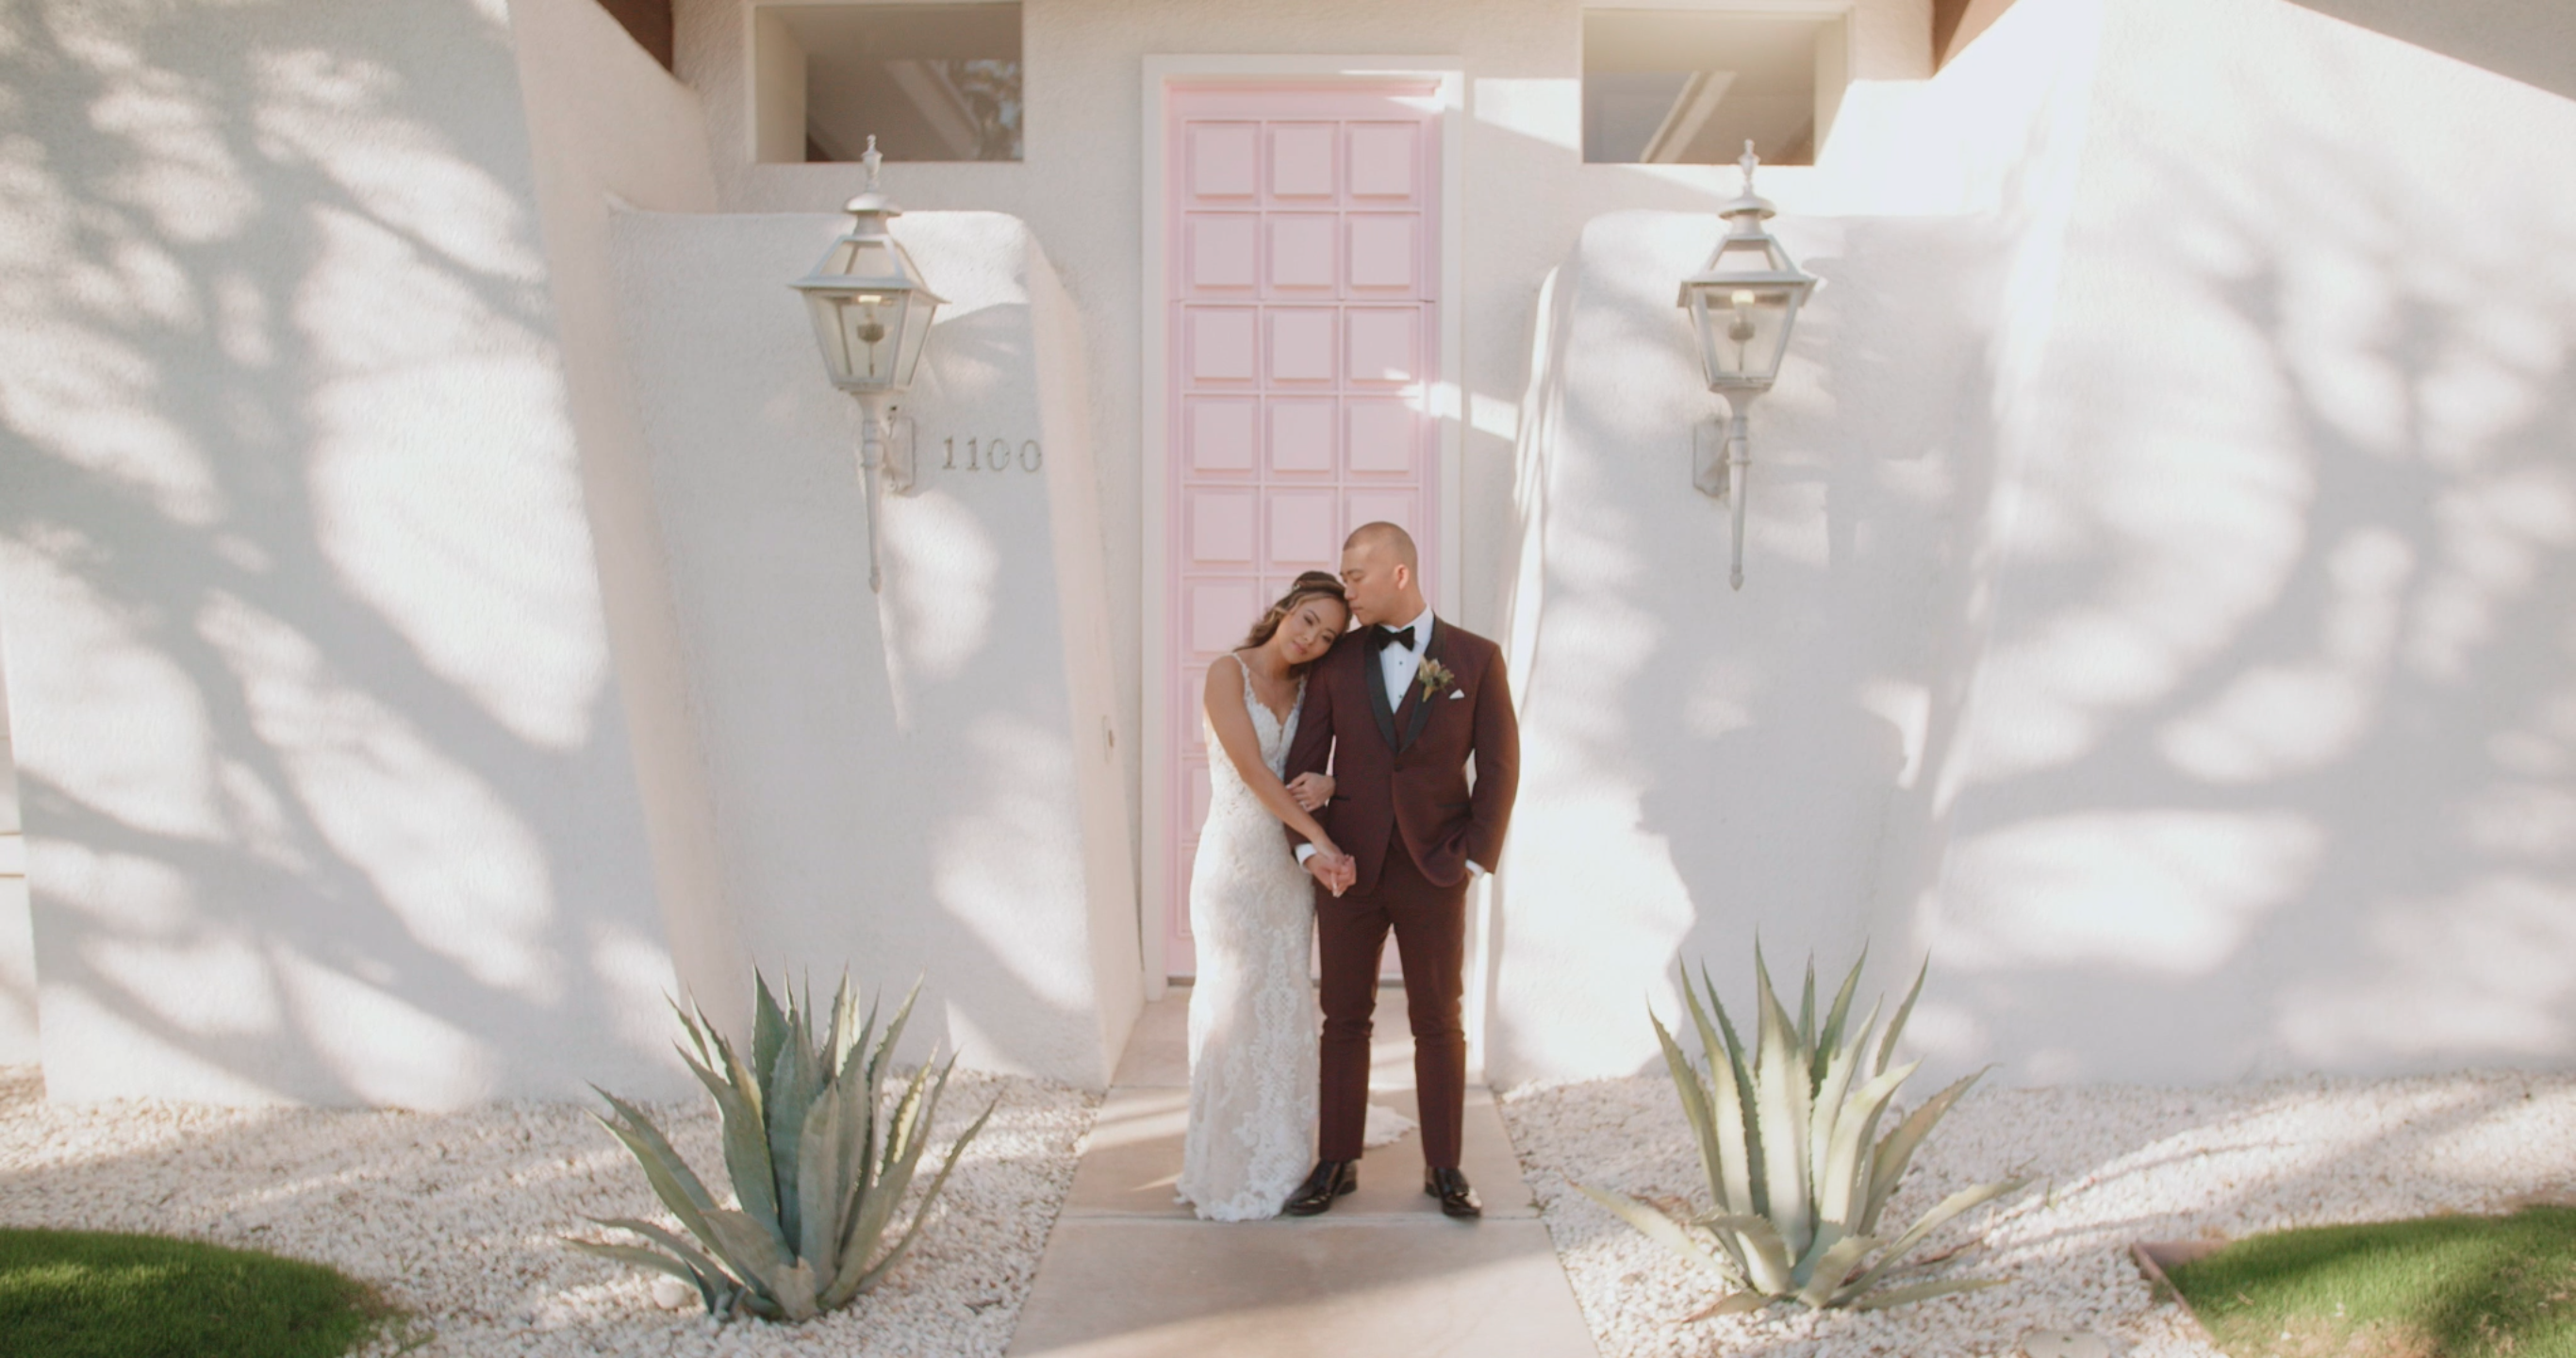 Jenny + Jay | Palm Springs, California | the pink door house